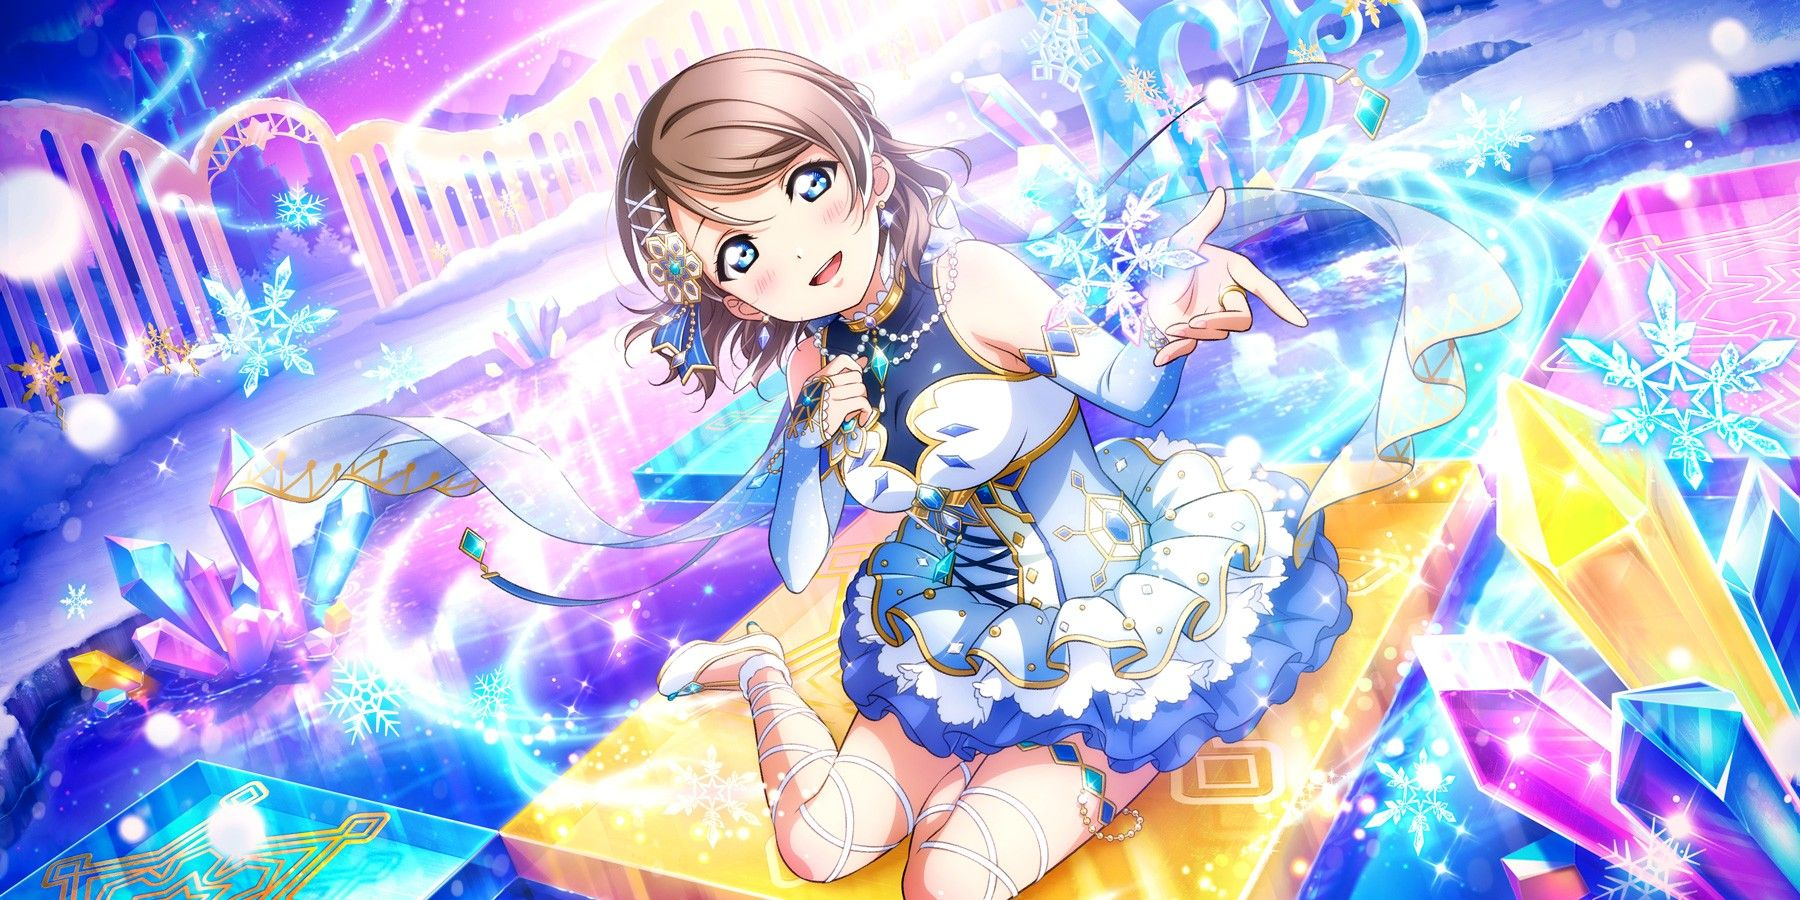 Pin on Love Live All Stars